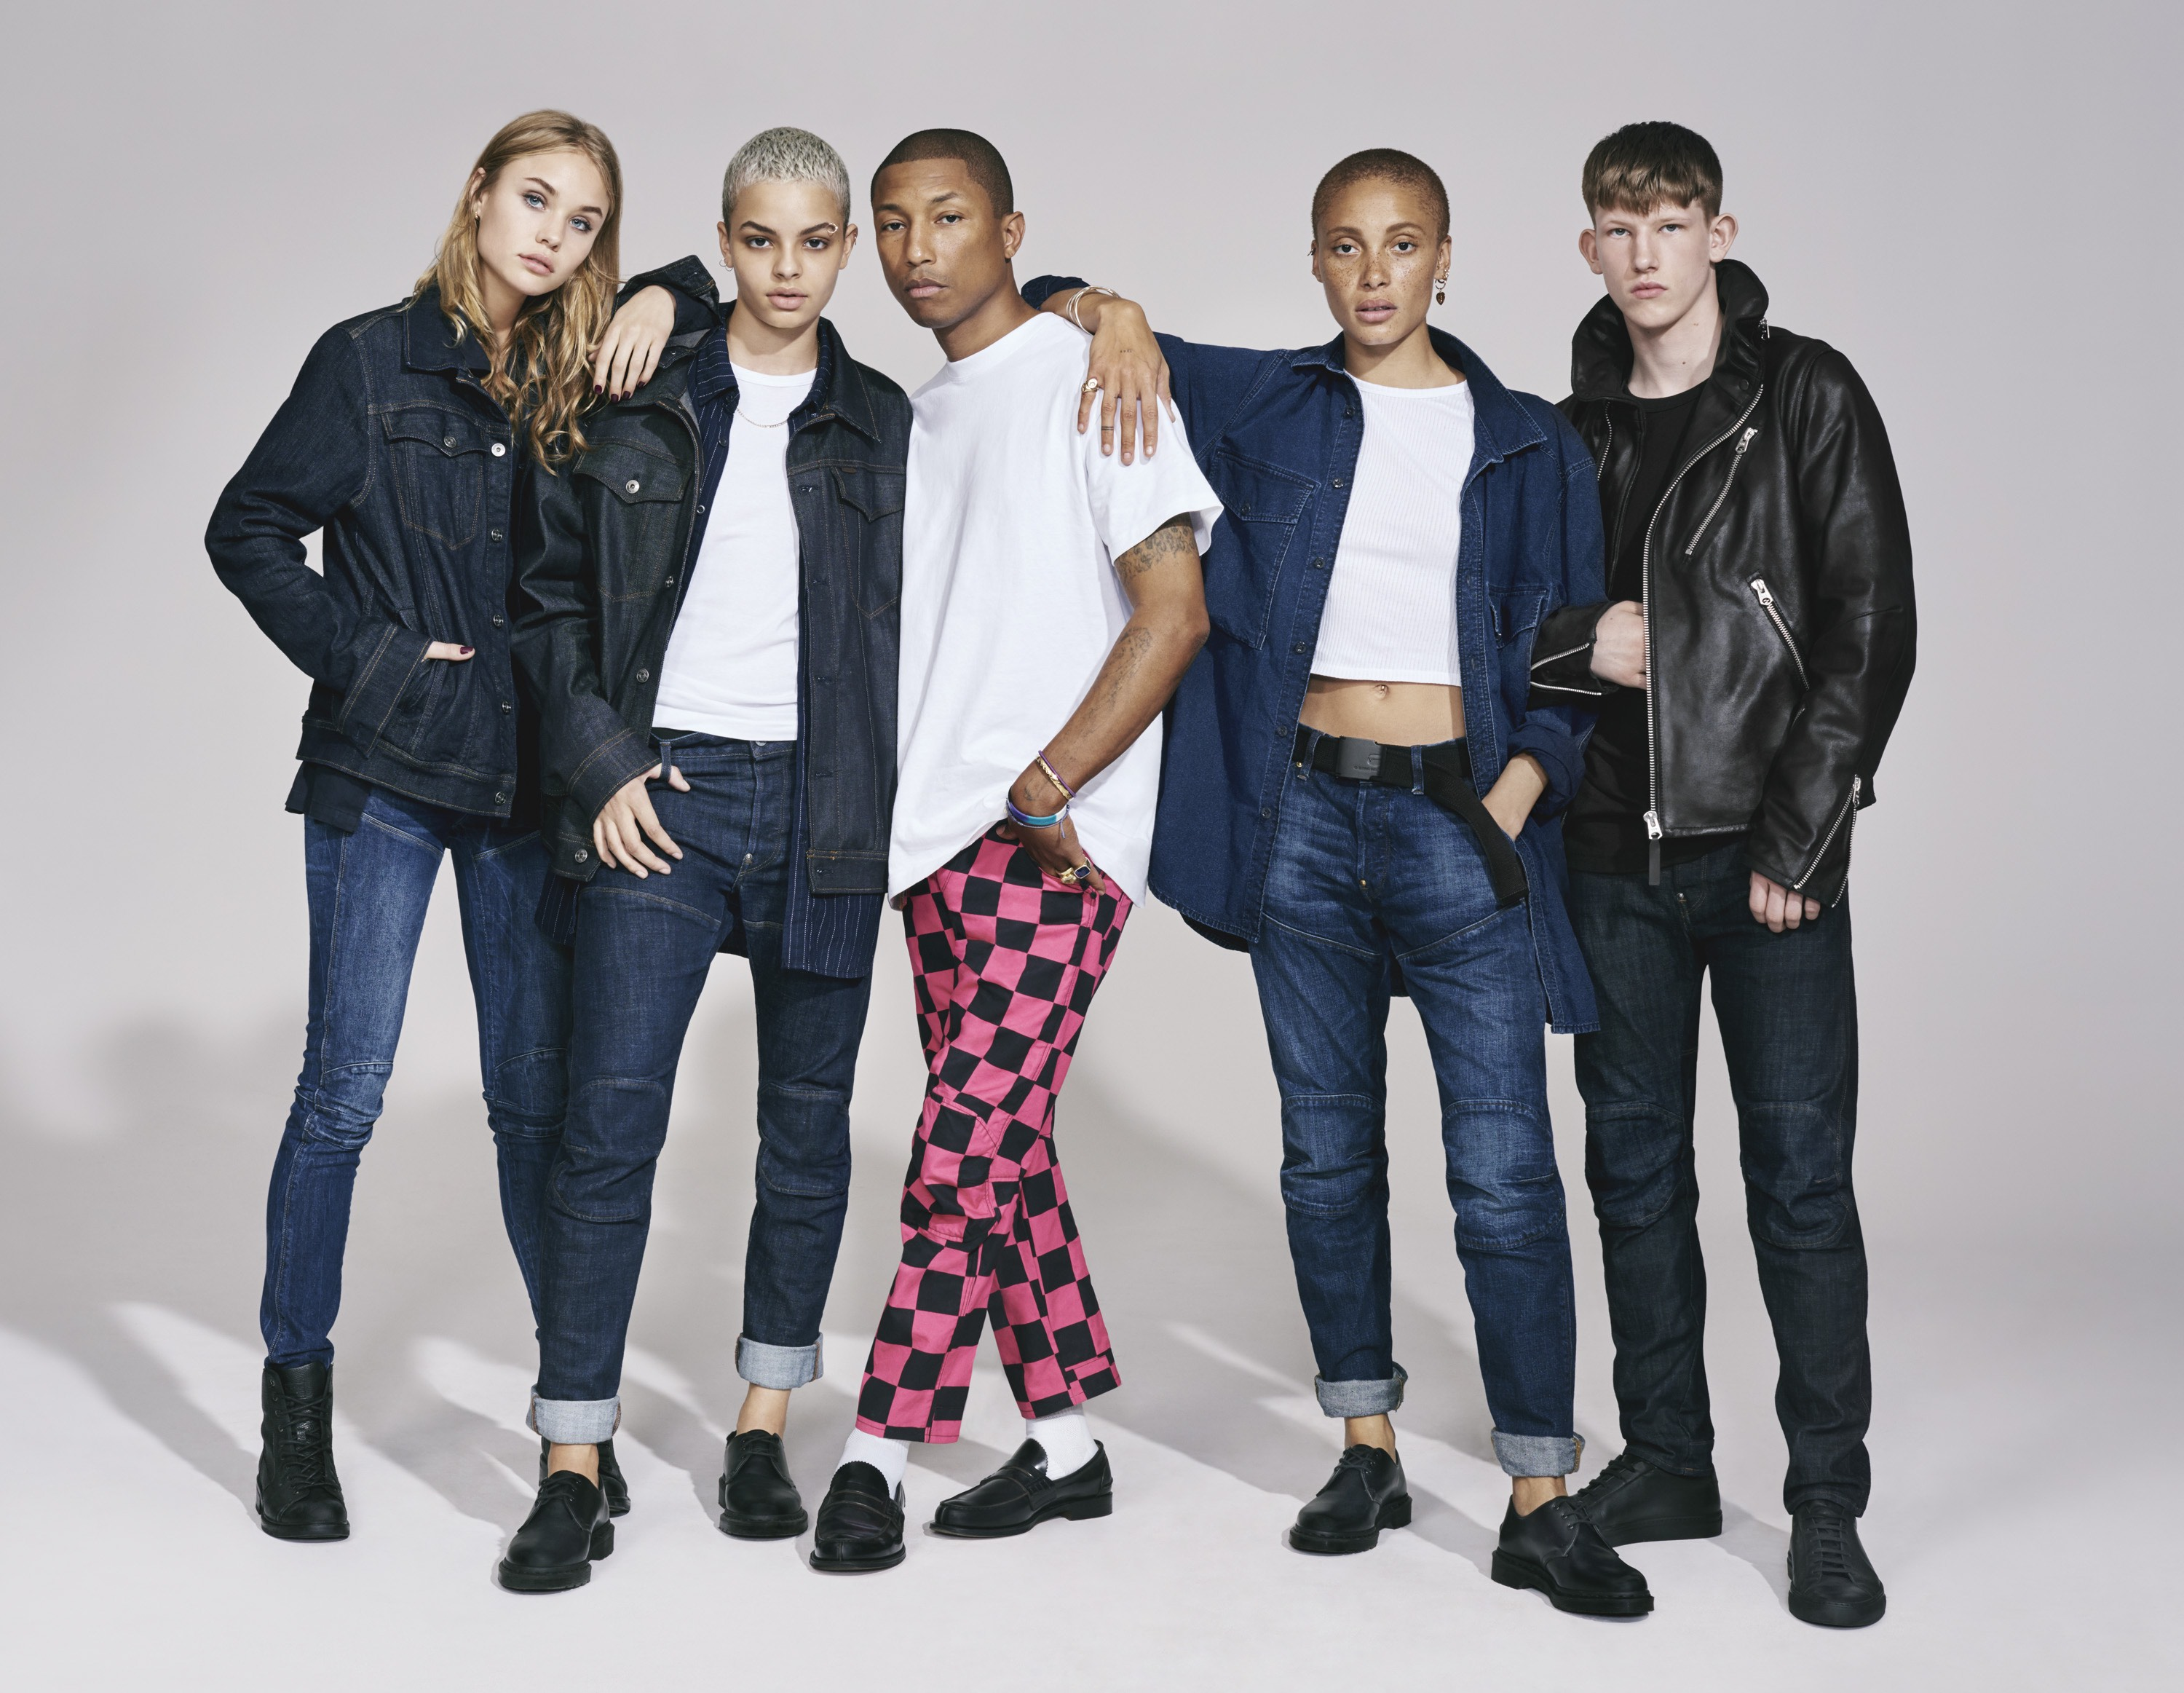 G-Star Raw: Autumn/Winter '17 Campaign